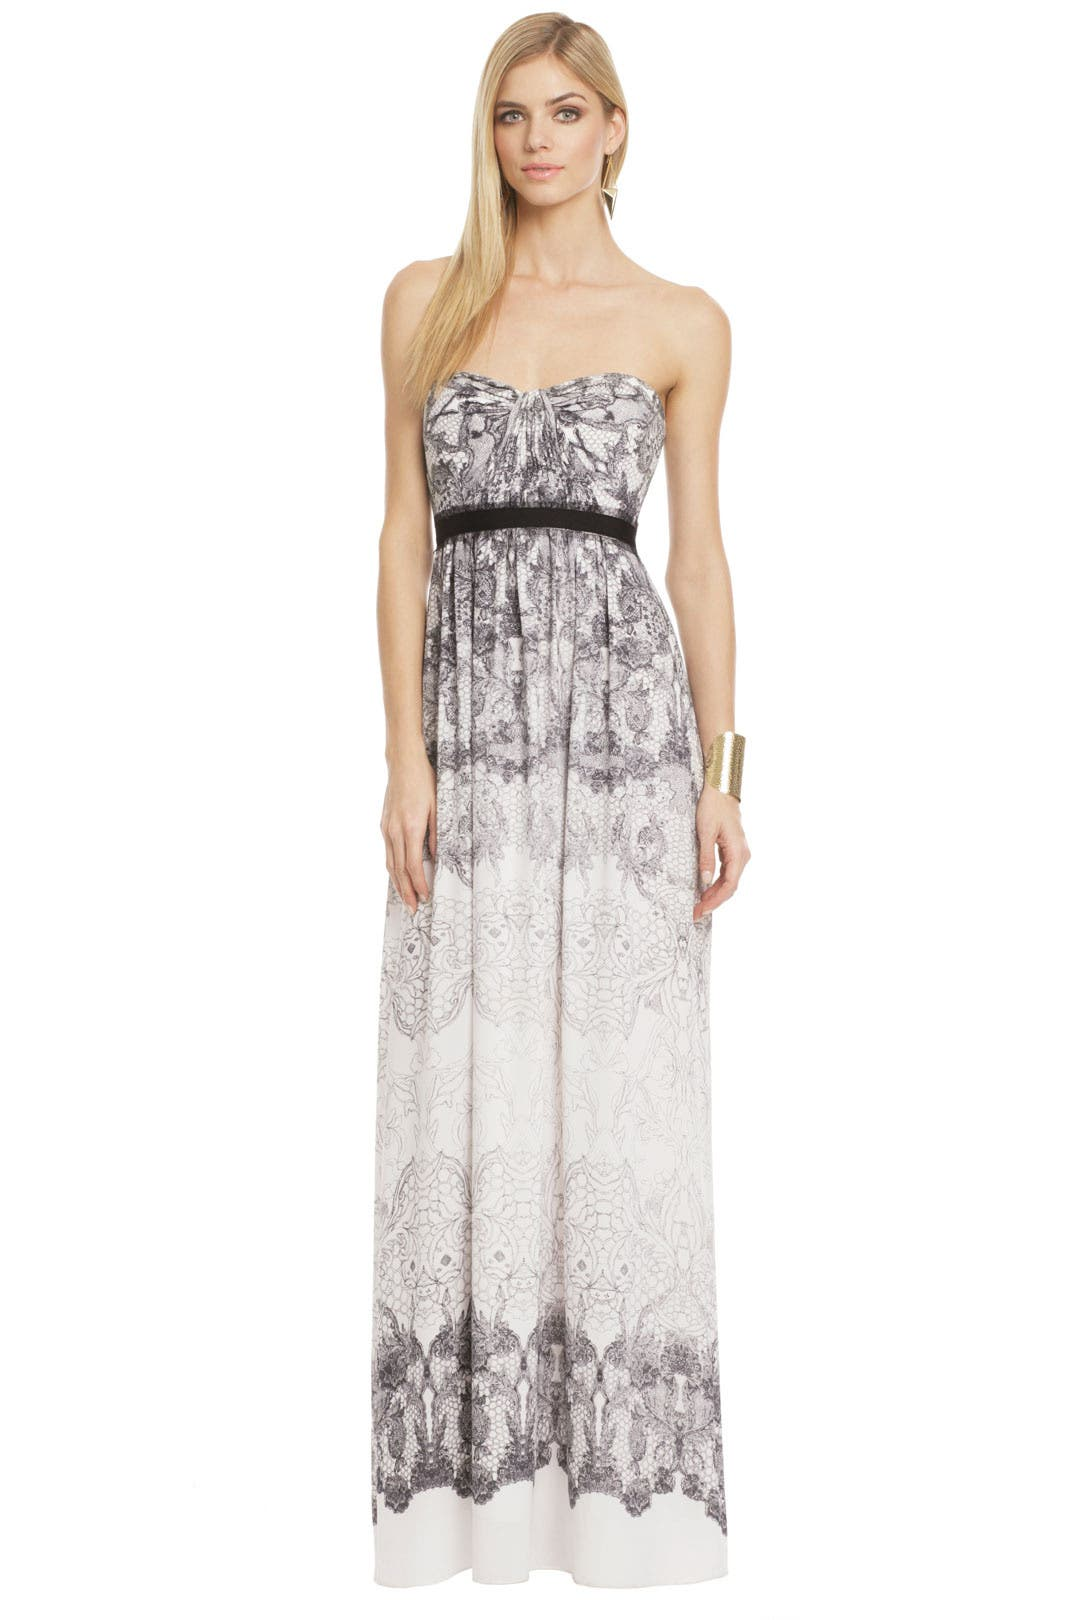 Lace All Night Gown by BCBGMAXAZRIA for $117 | Rent the Runway